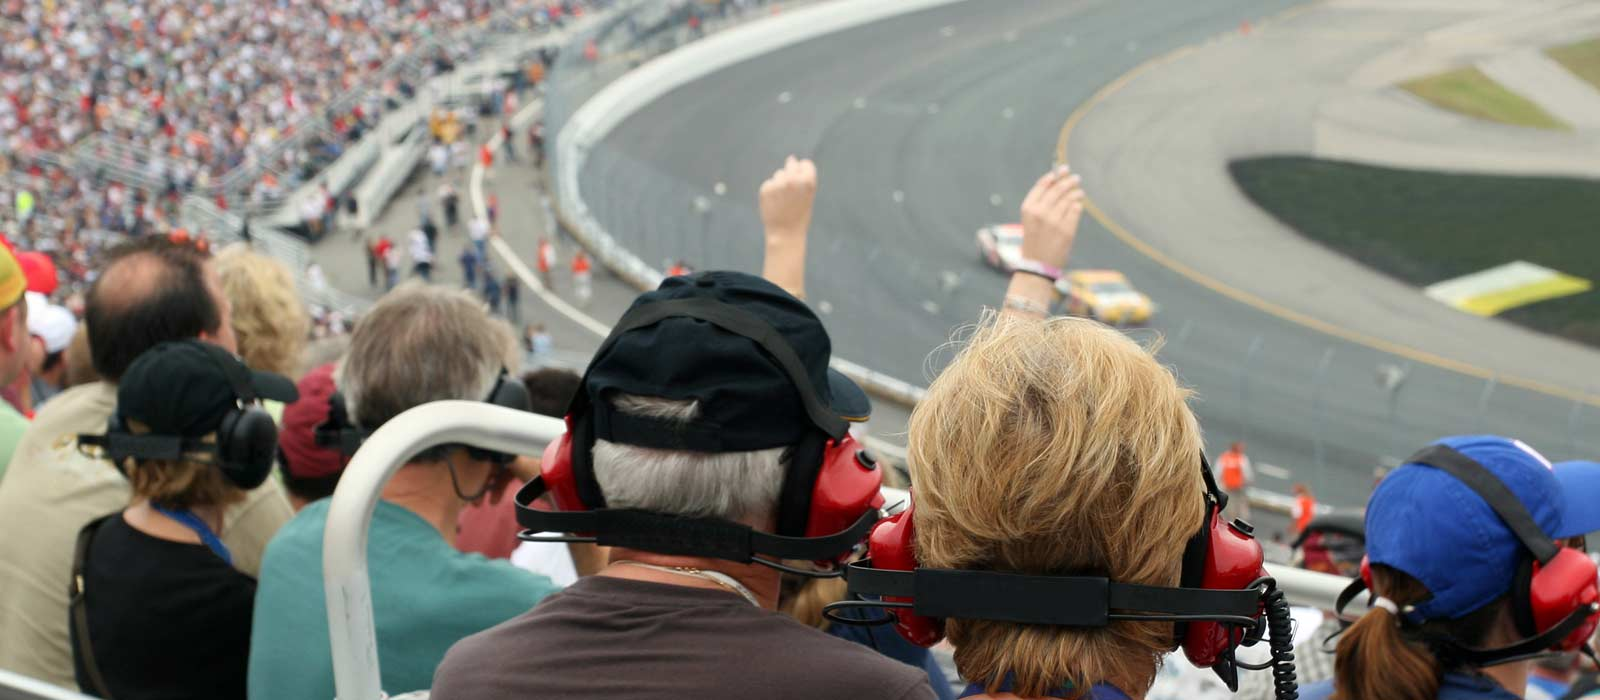 View from the stands of fans watching racing at a racetrack near campus